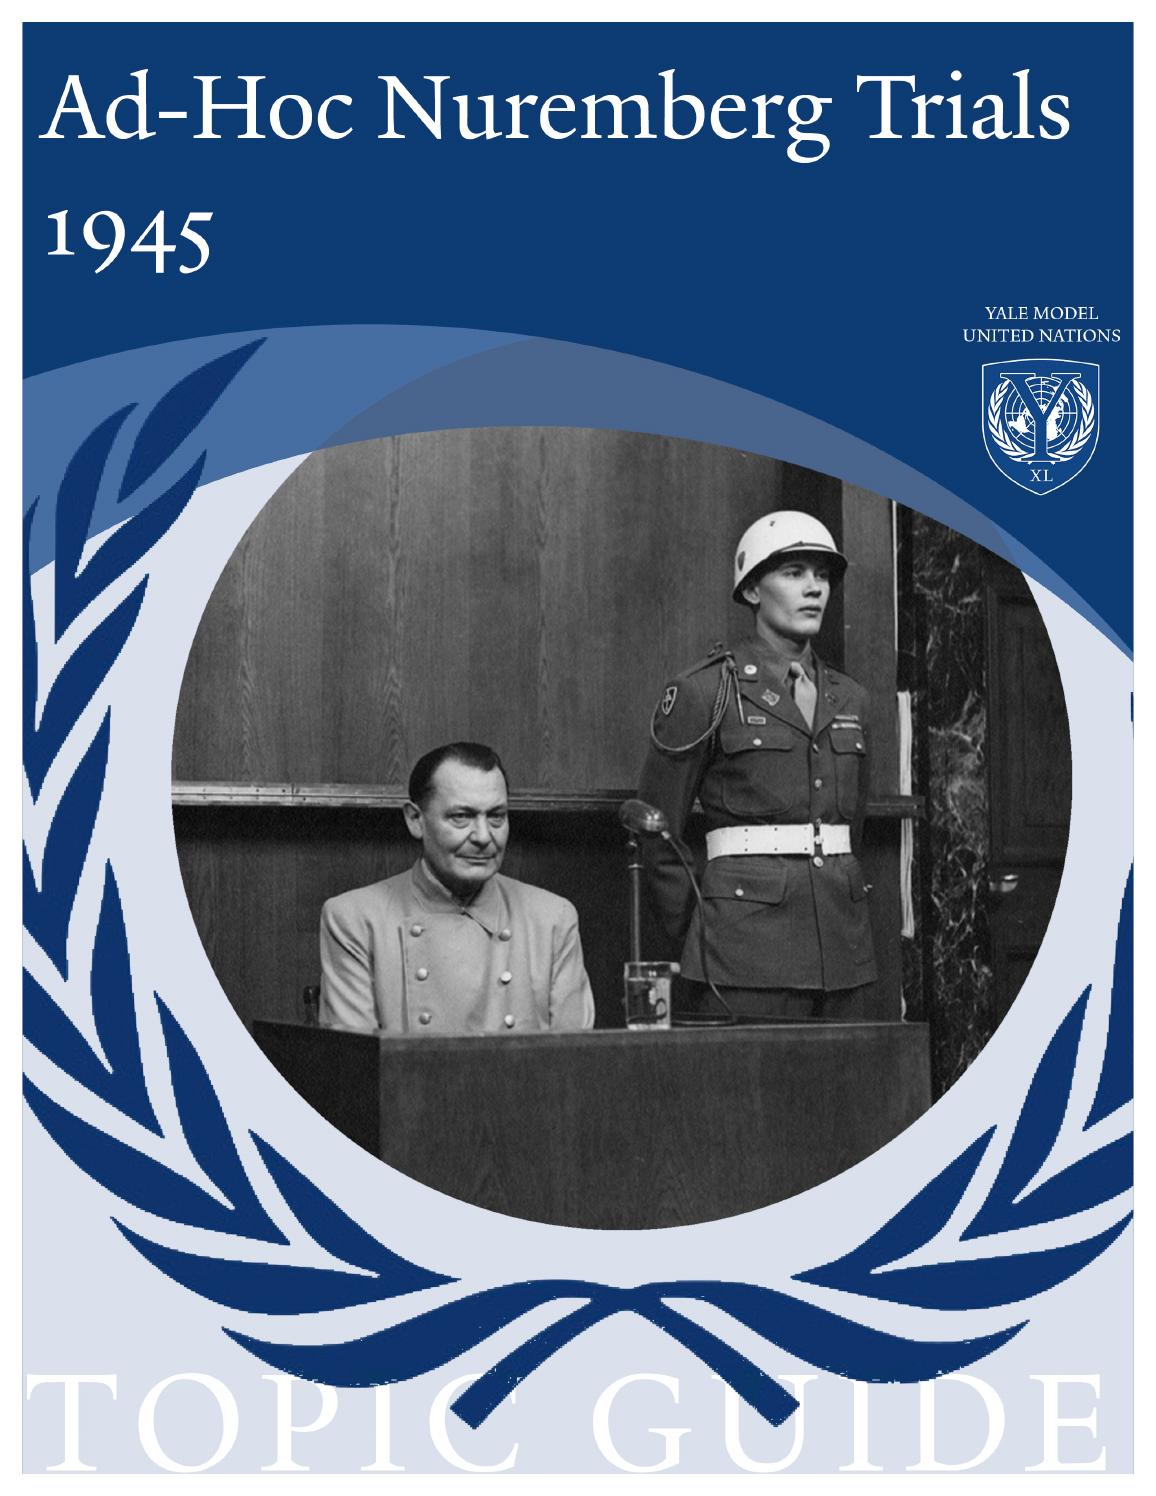 nuremberg trials topic guide by yale model united nations issuu